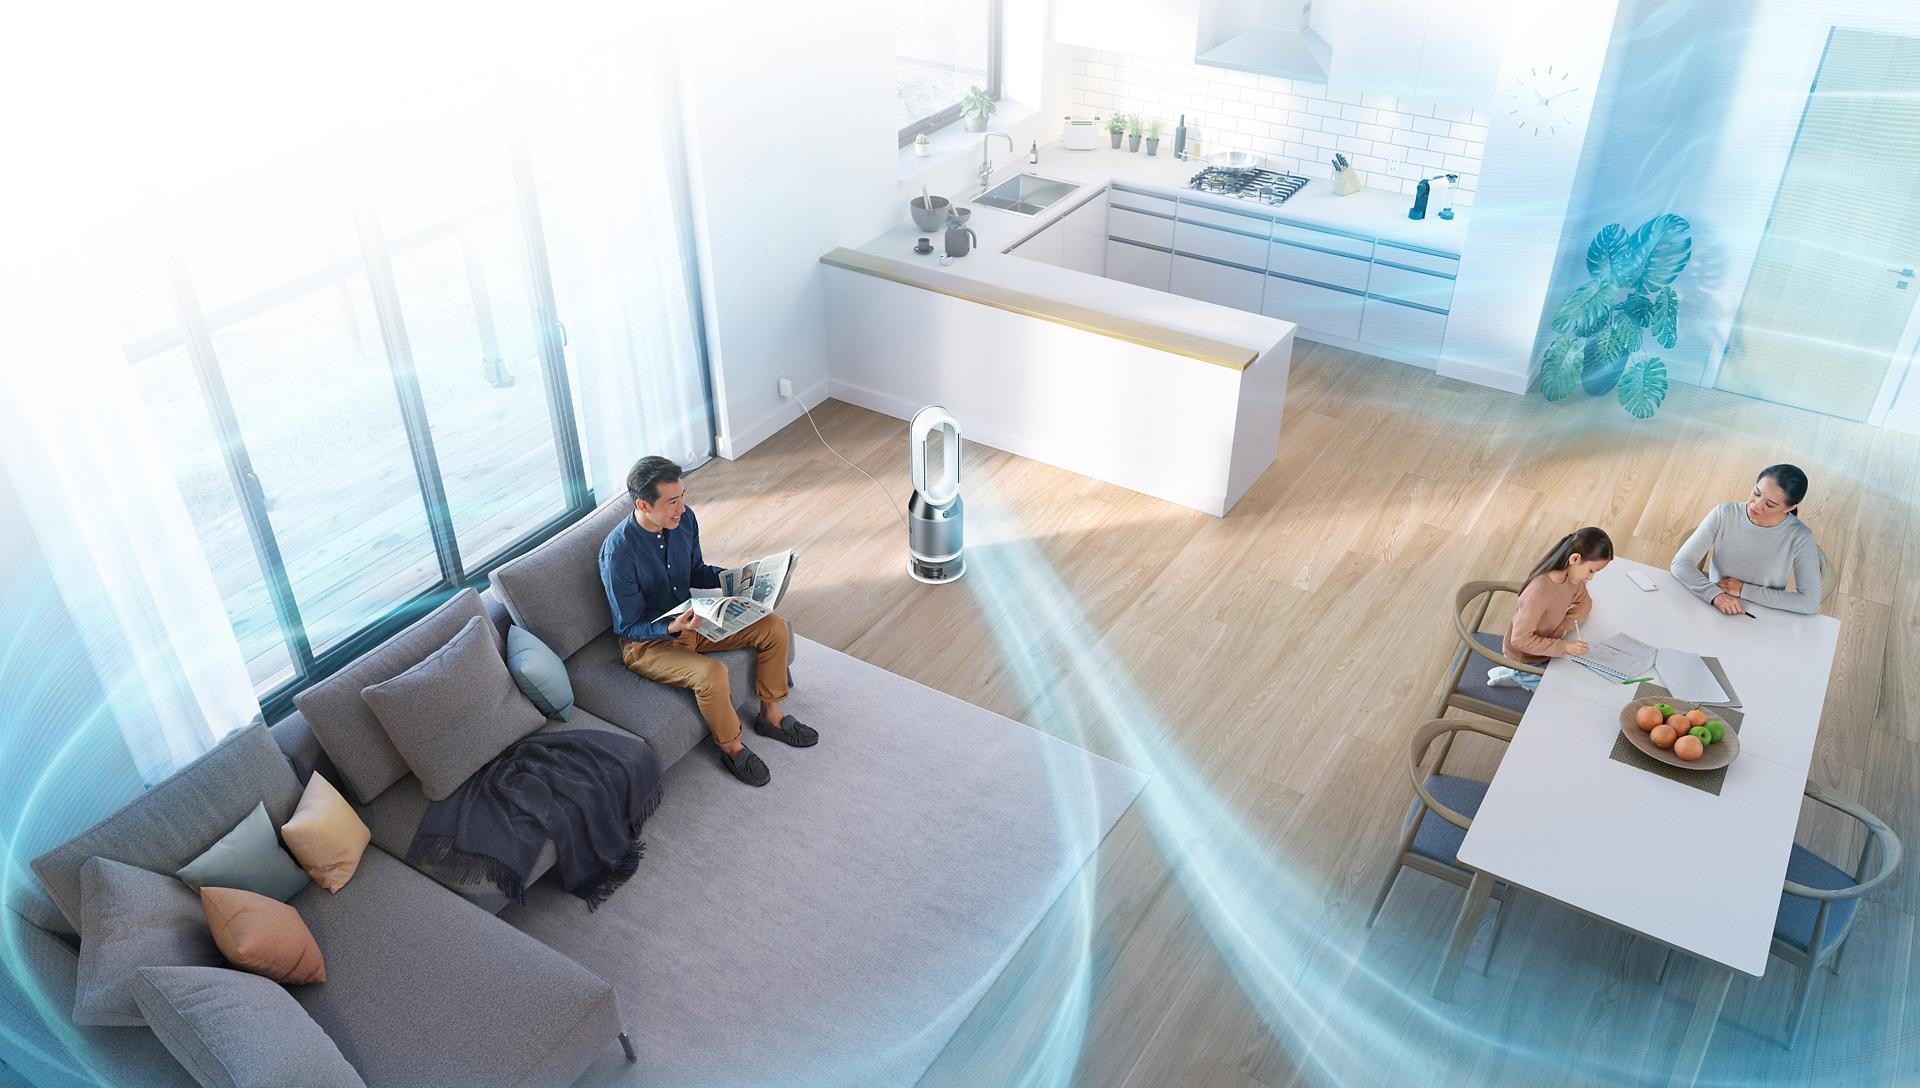 The Dyson purifier humidifier projecting air throughout a whole room while a family relax